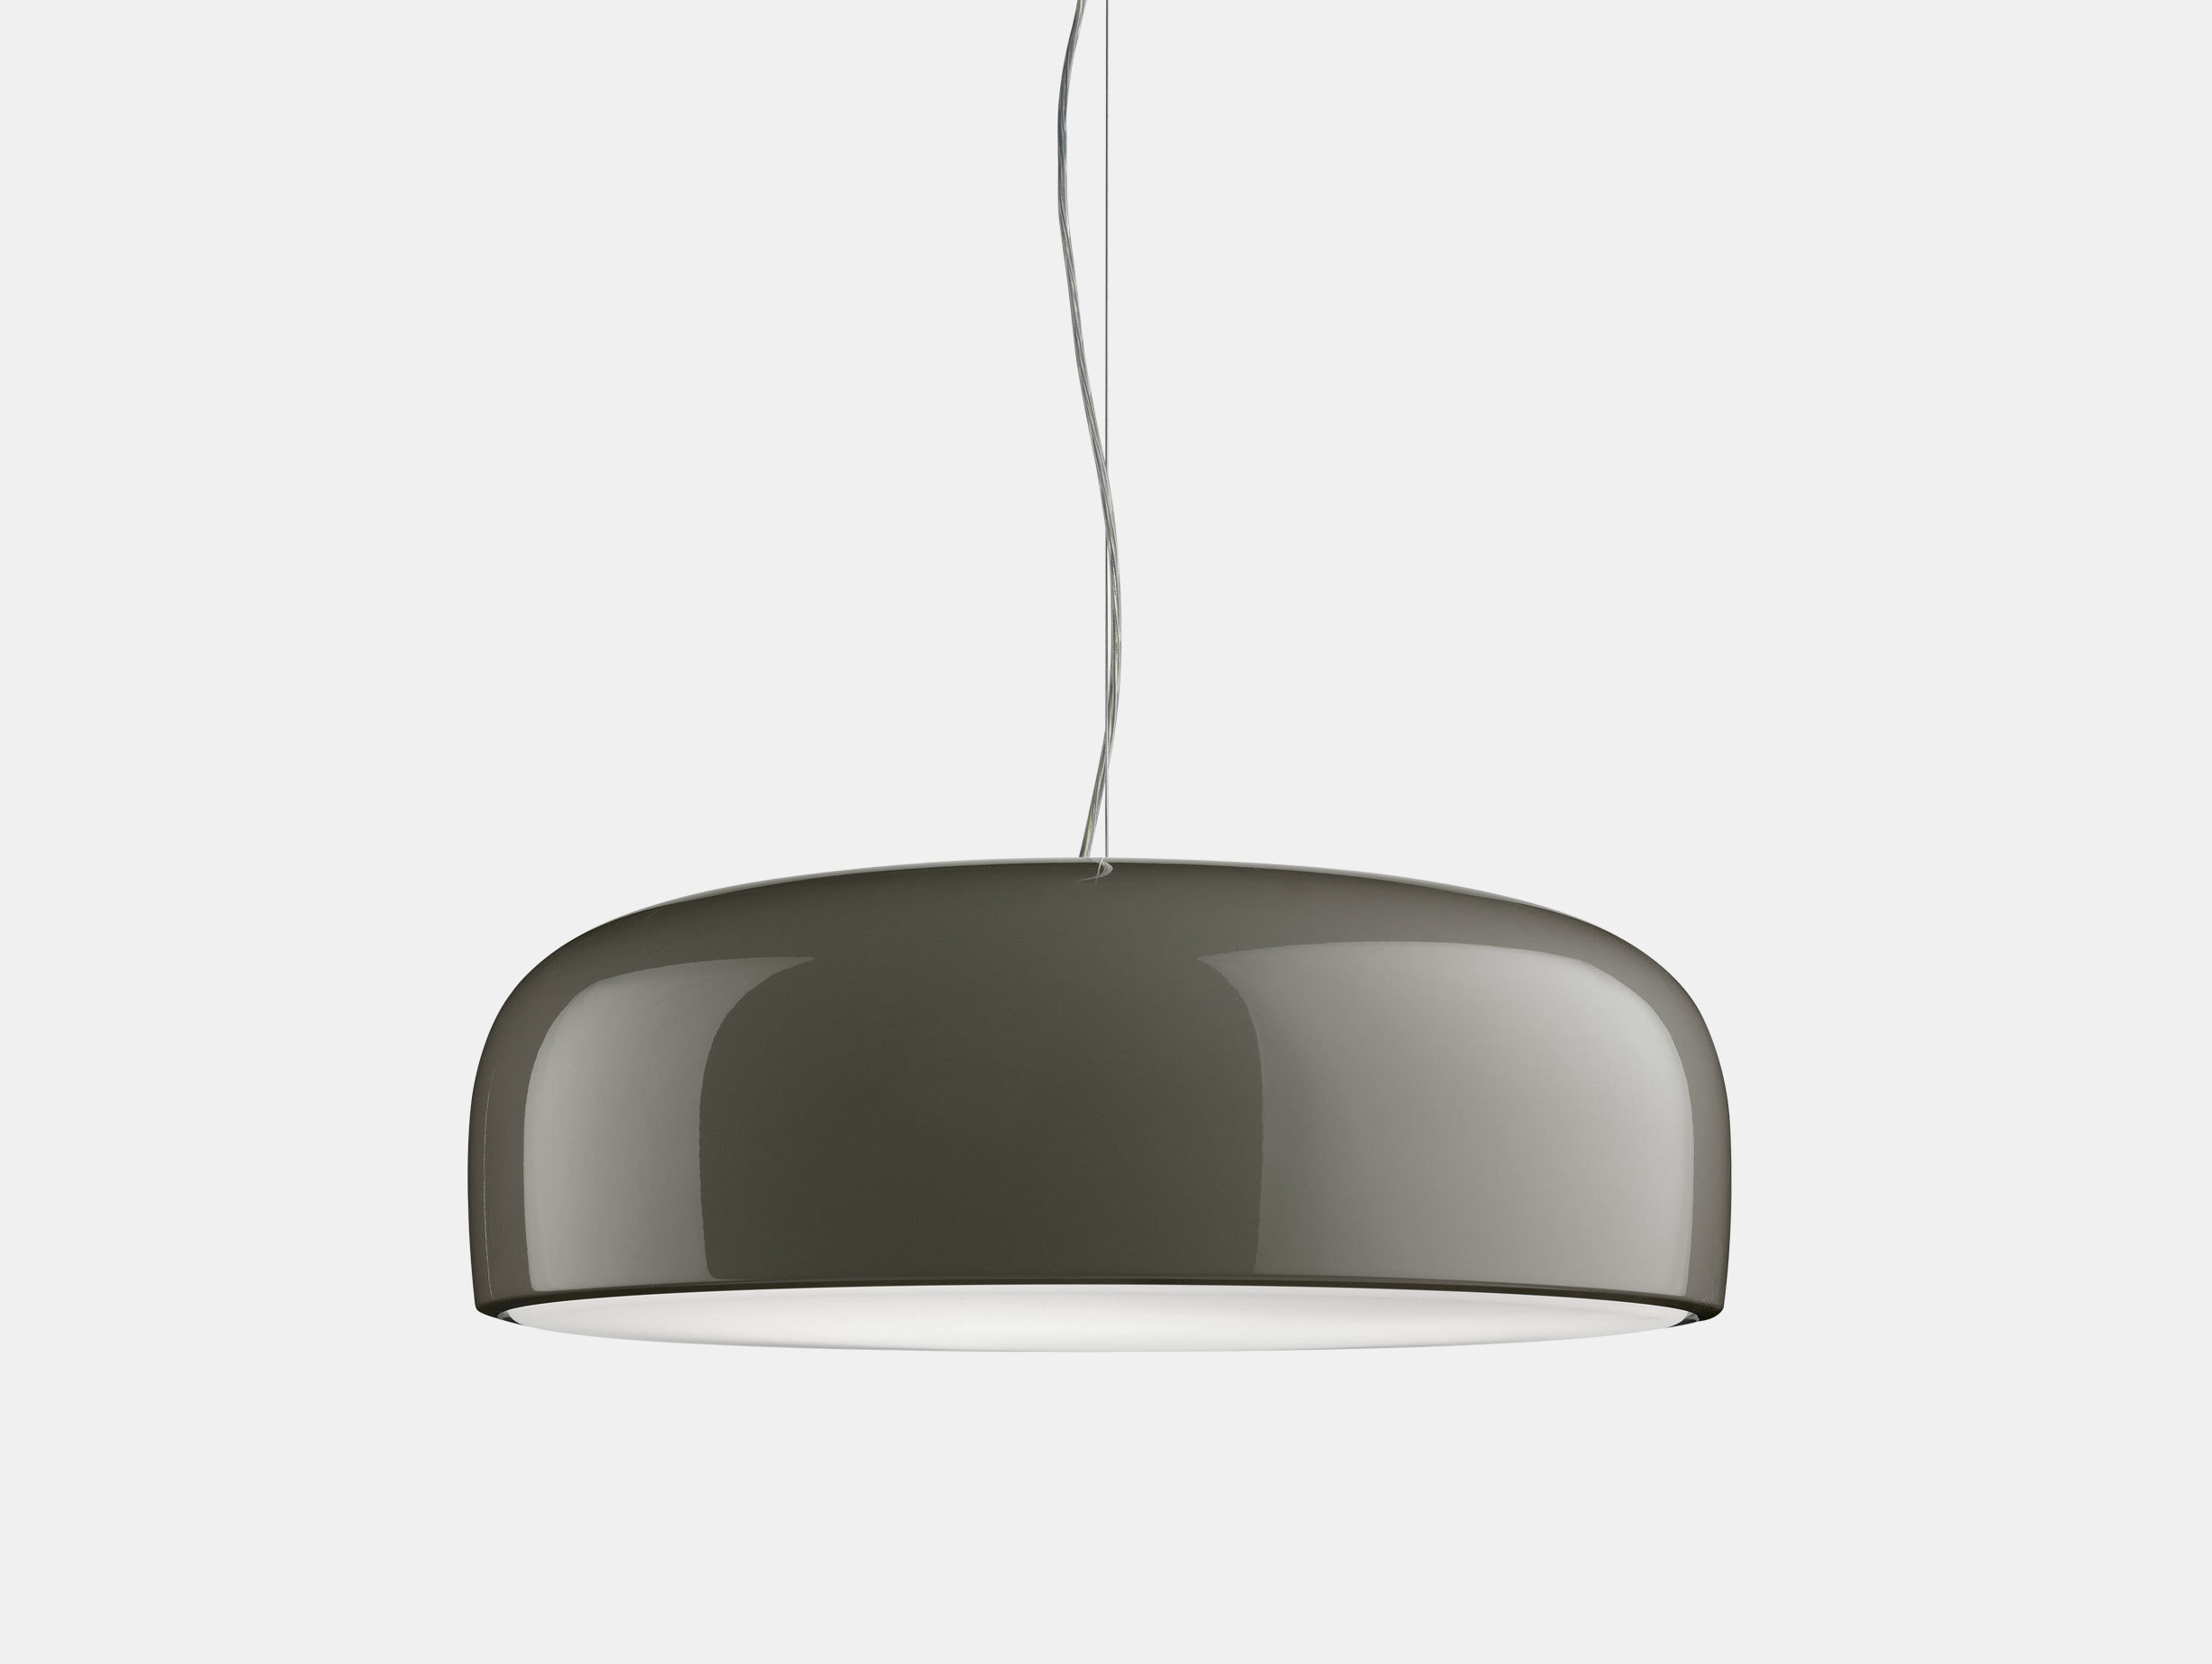 Smithfield Eco LED Suspension Light image 2